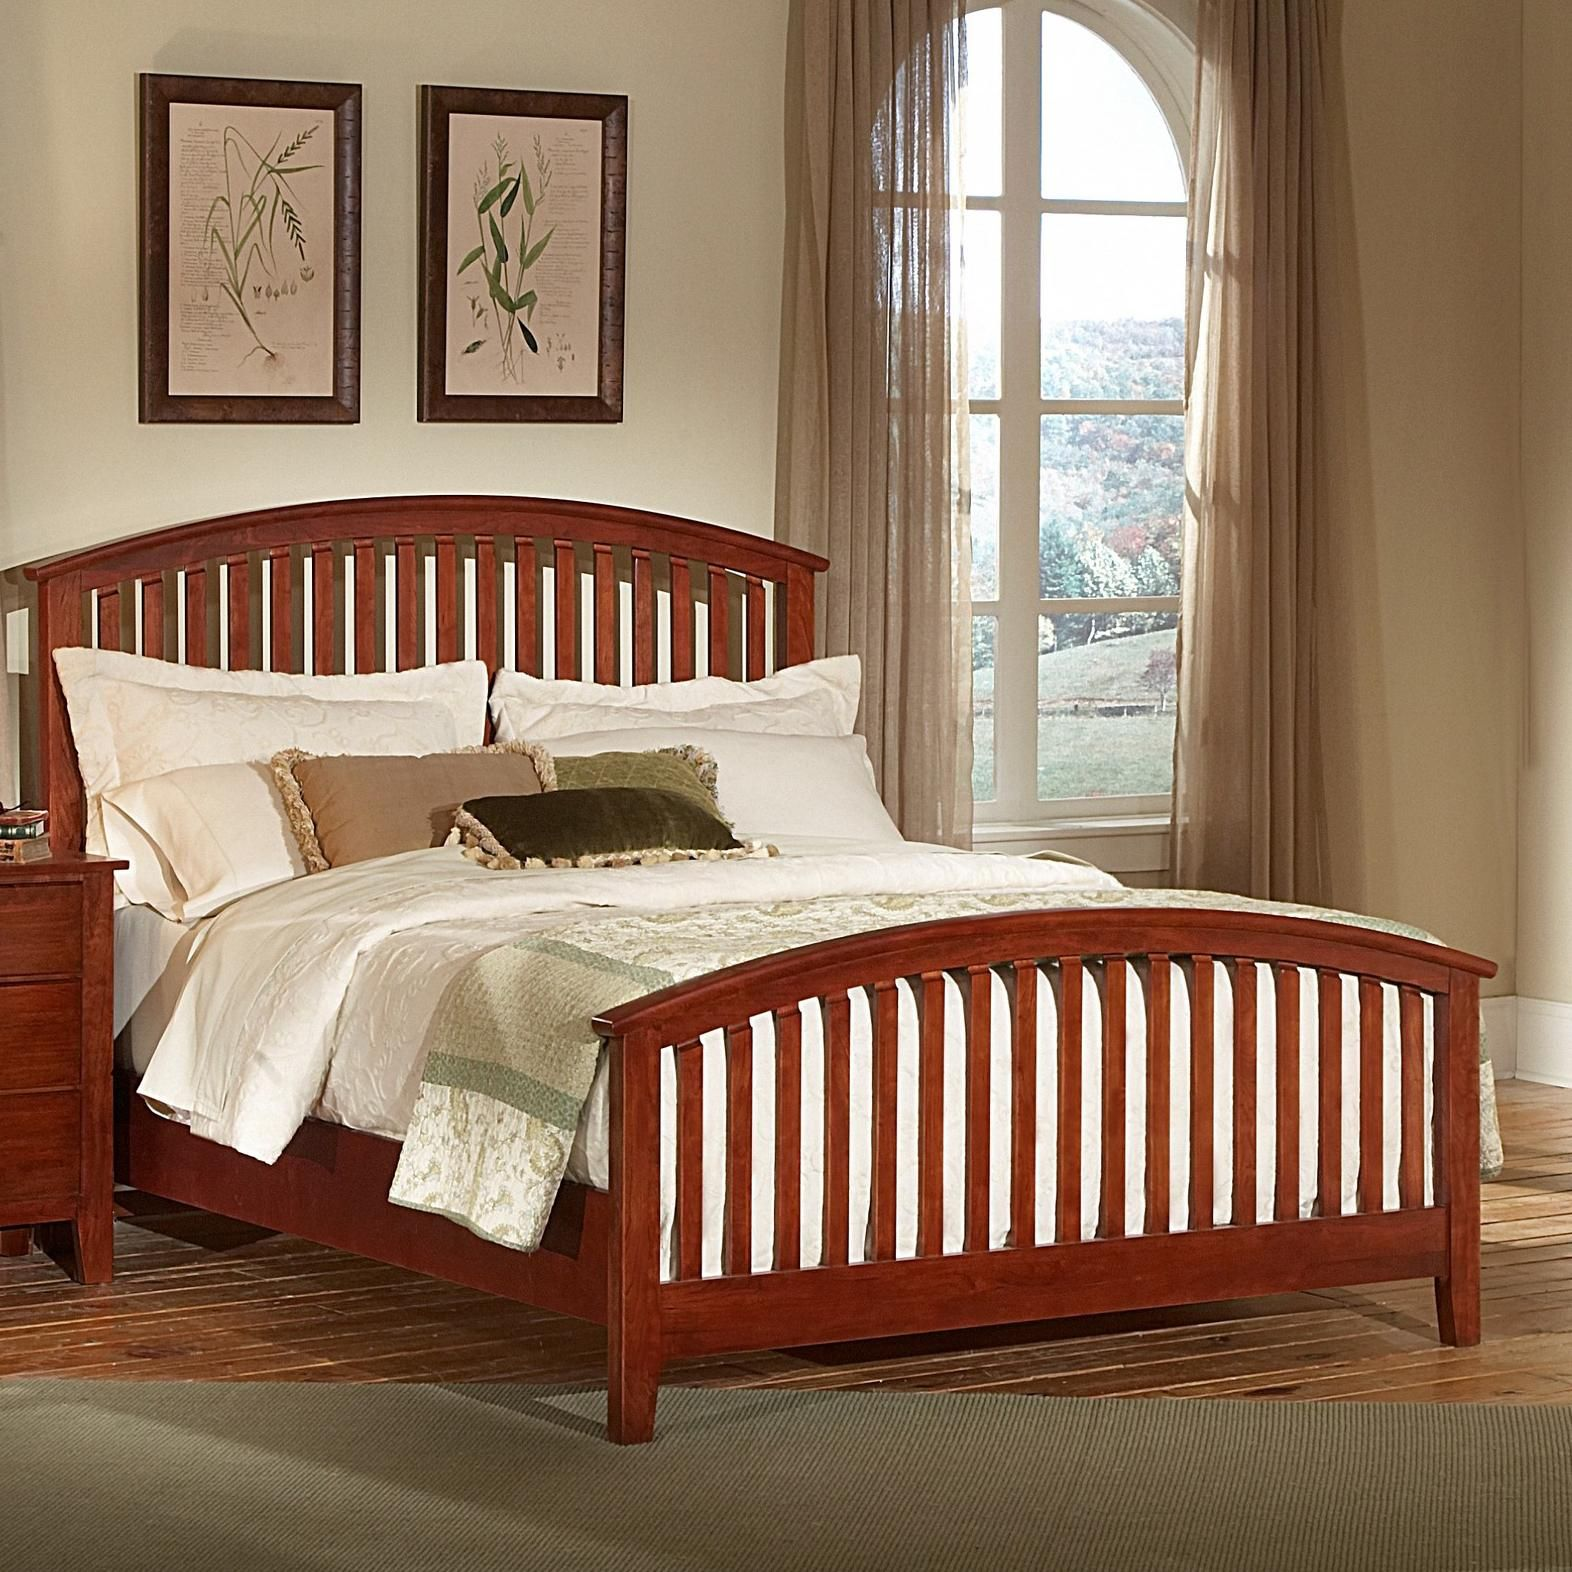 Appalachian hardwood simply cherry king arched slat bed